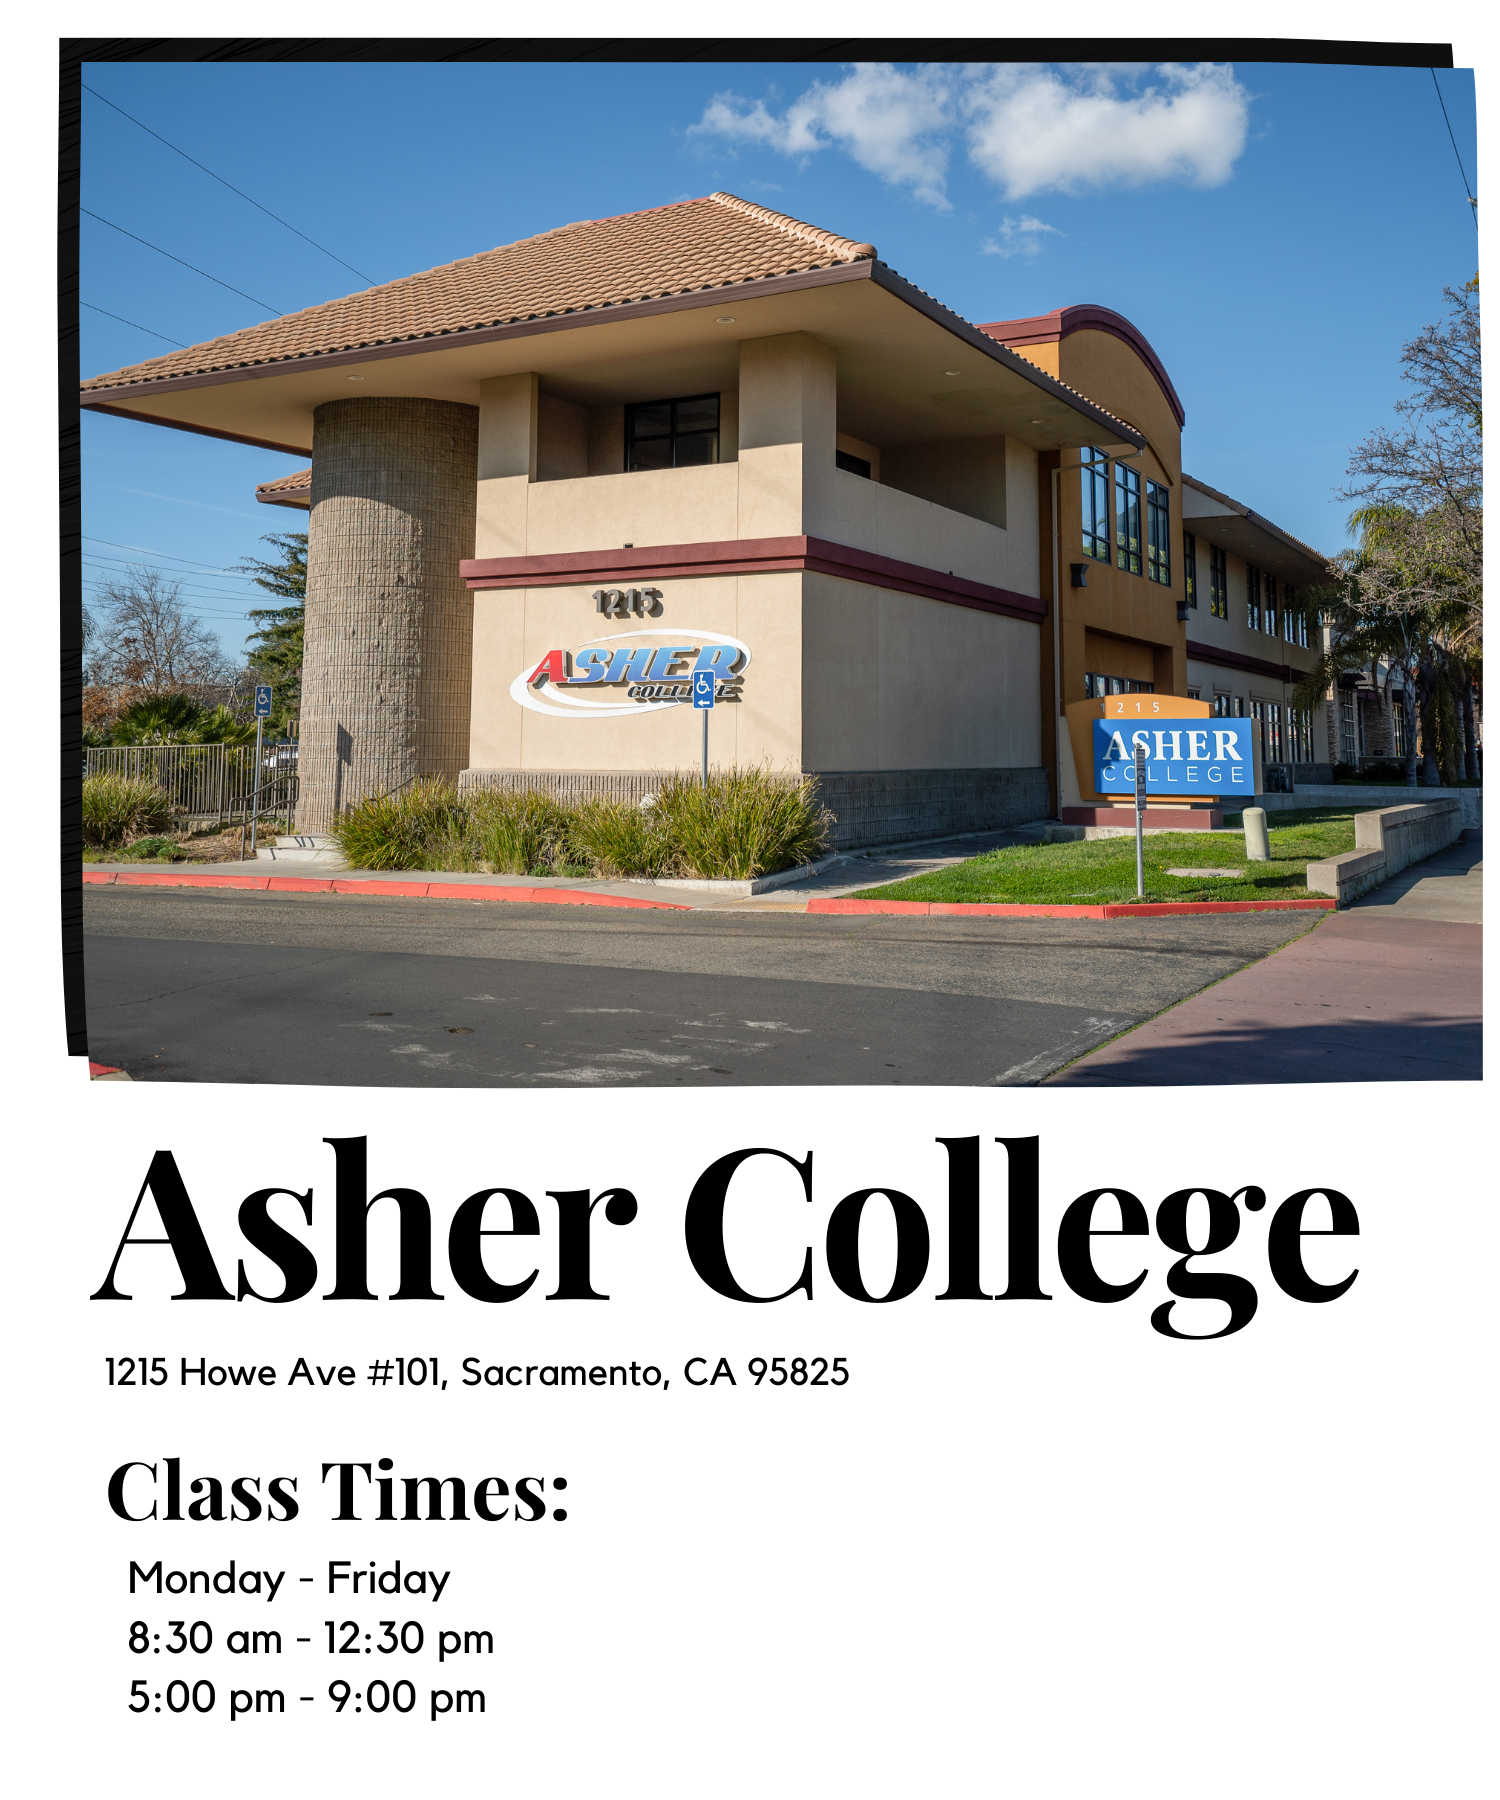 Asher College times